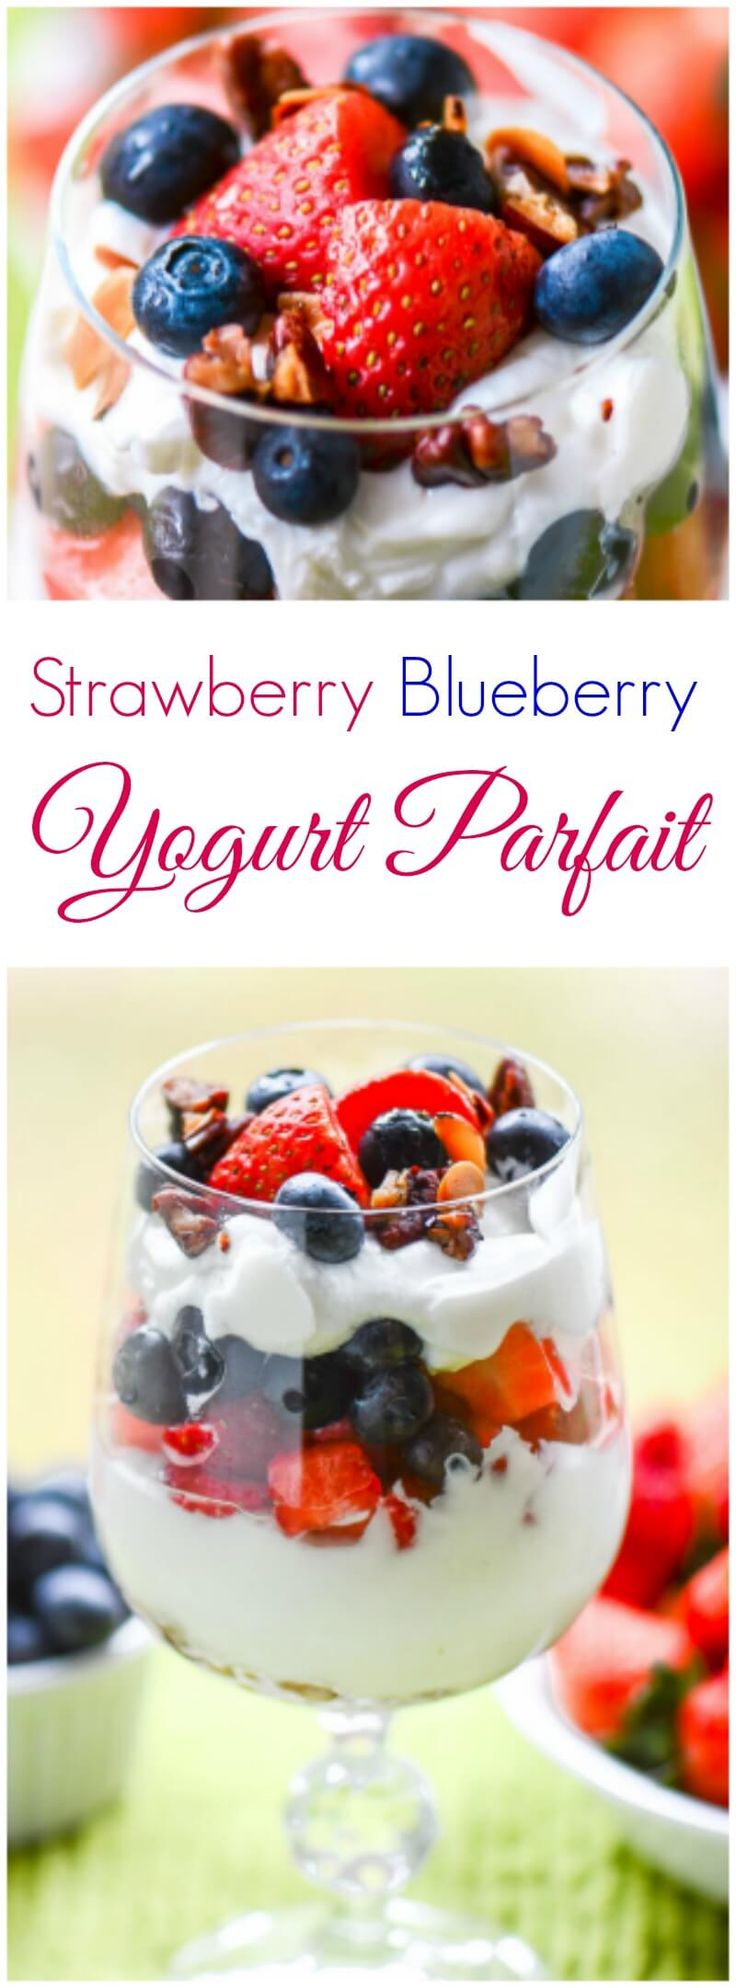 Strawberry Blueberry Yogurt Parfaits ~ http://FlavorMosaic.com